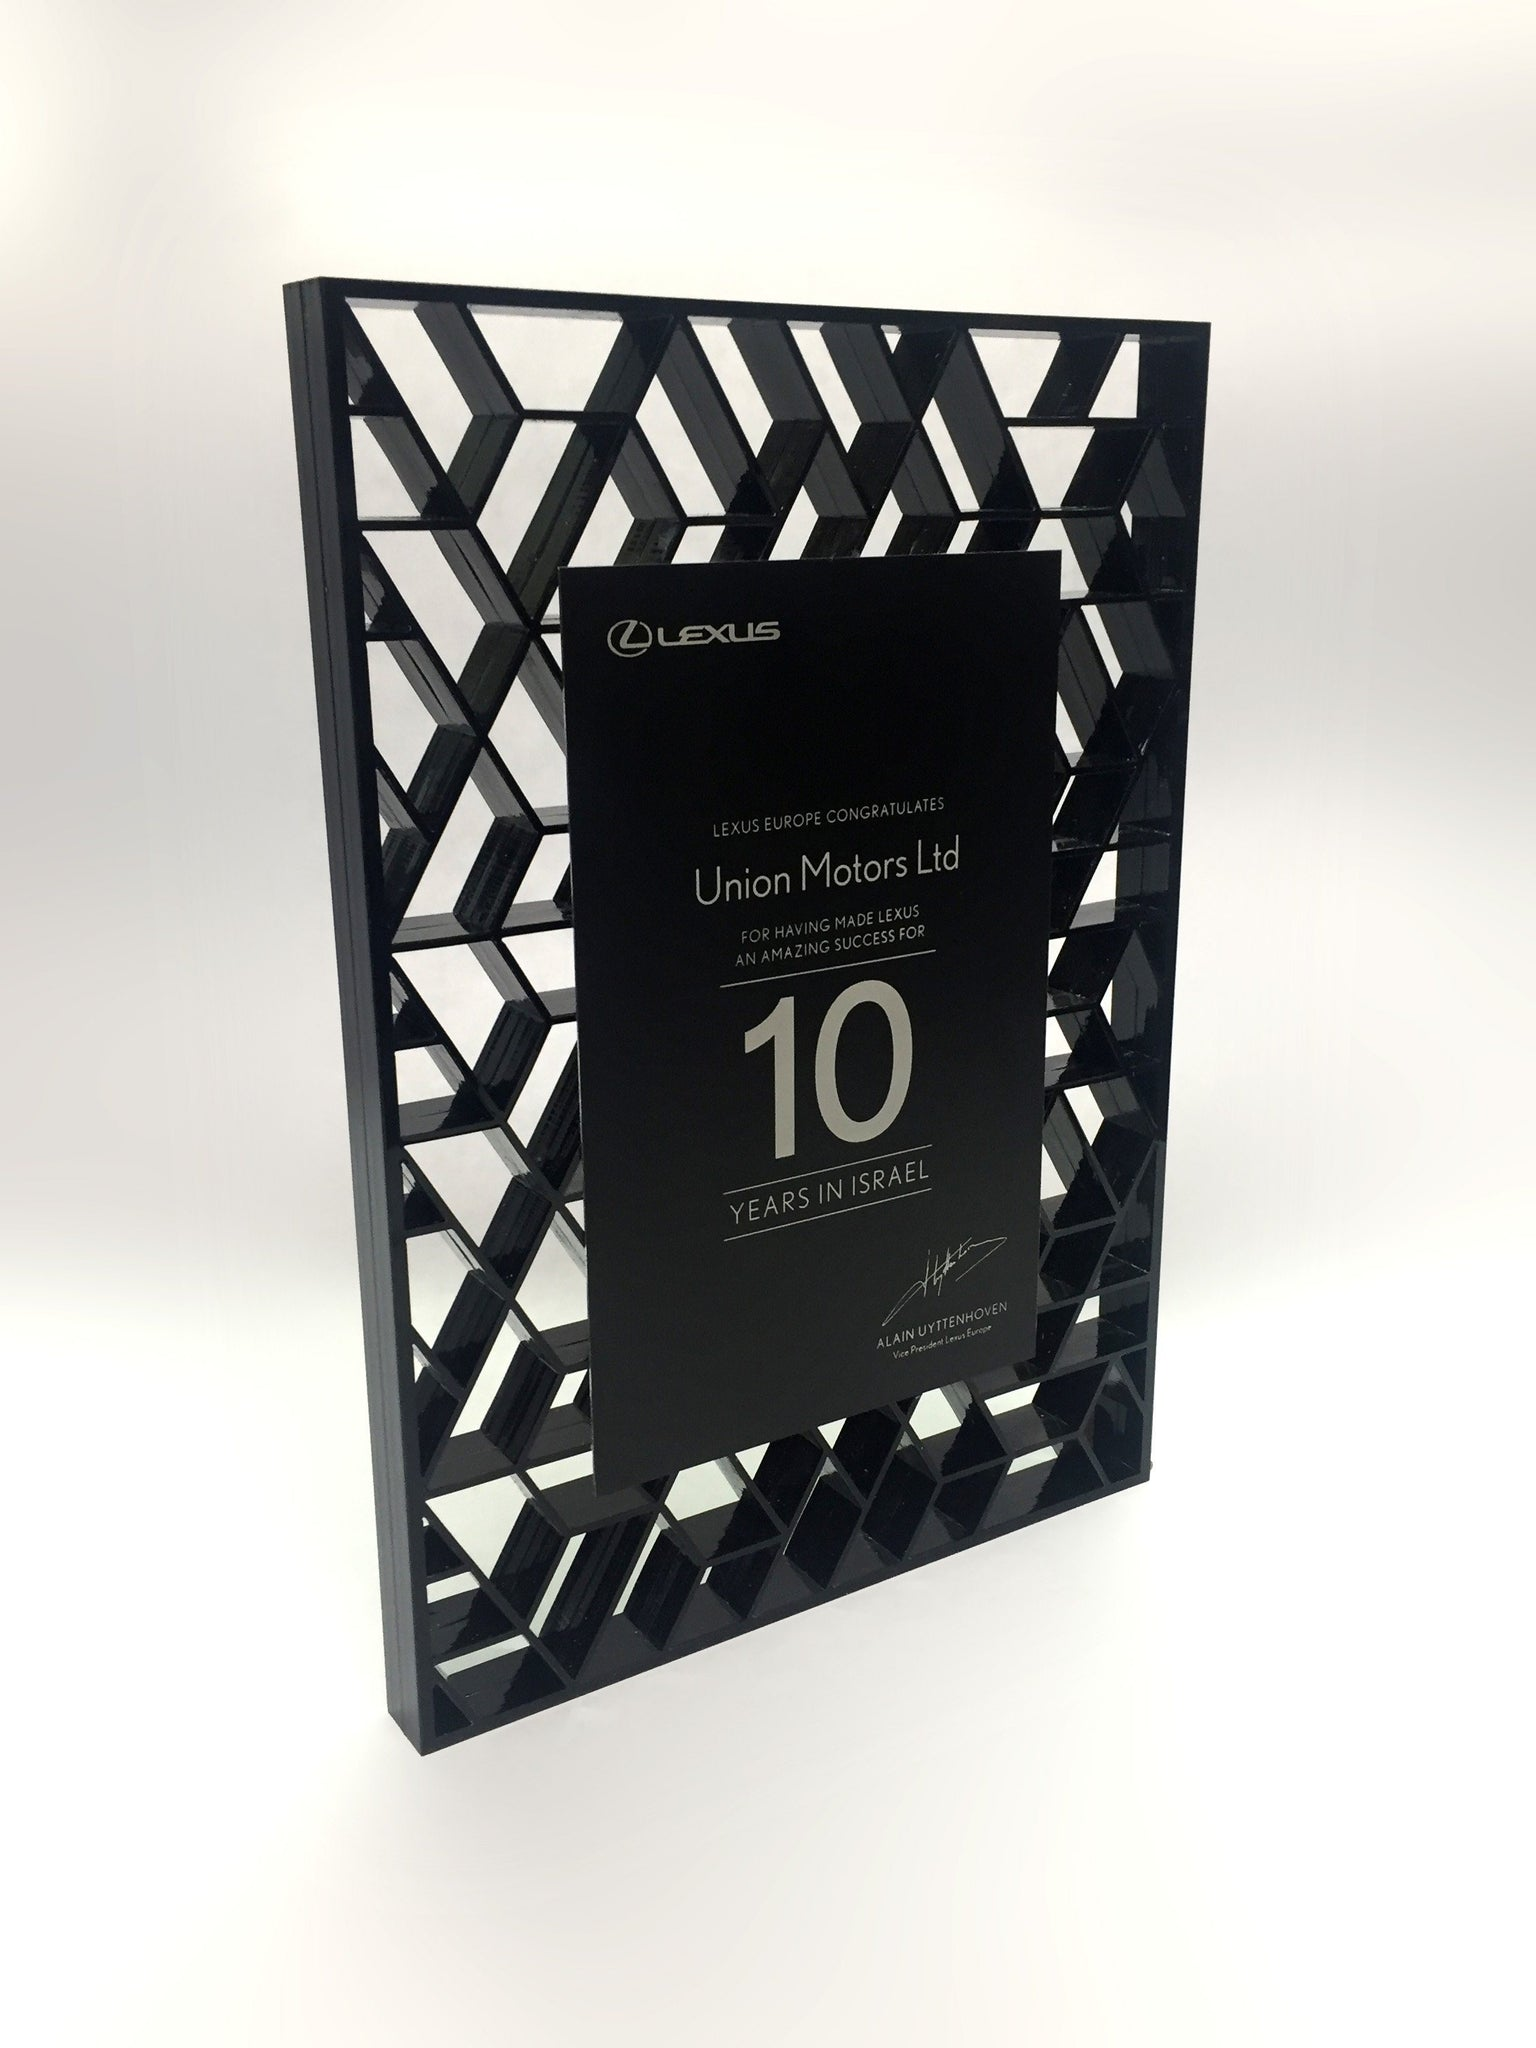 Lexus Acrylic Lattice Awards Bespoke Acrylic Awards Creative Awards